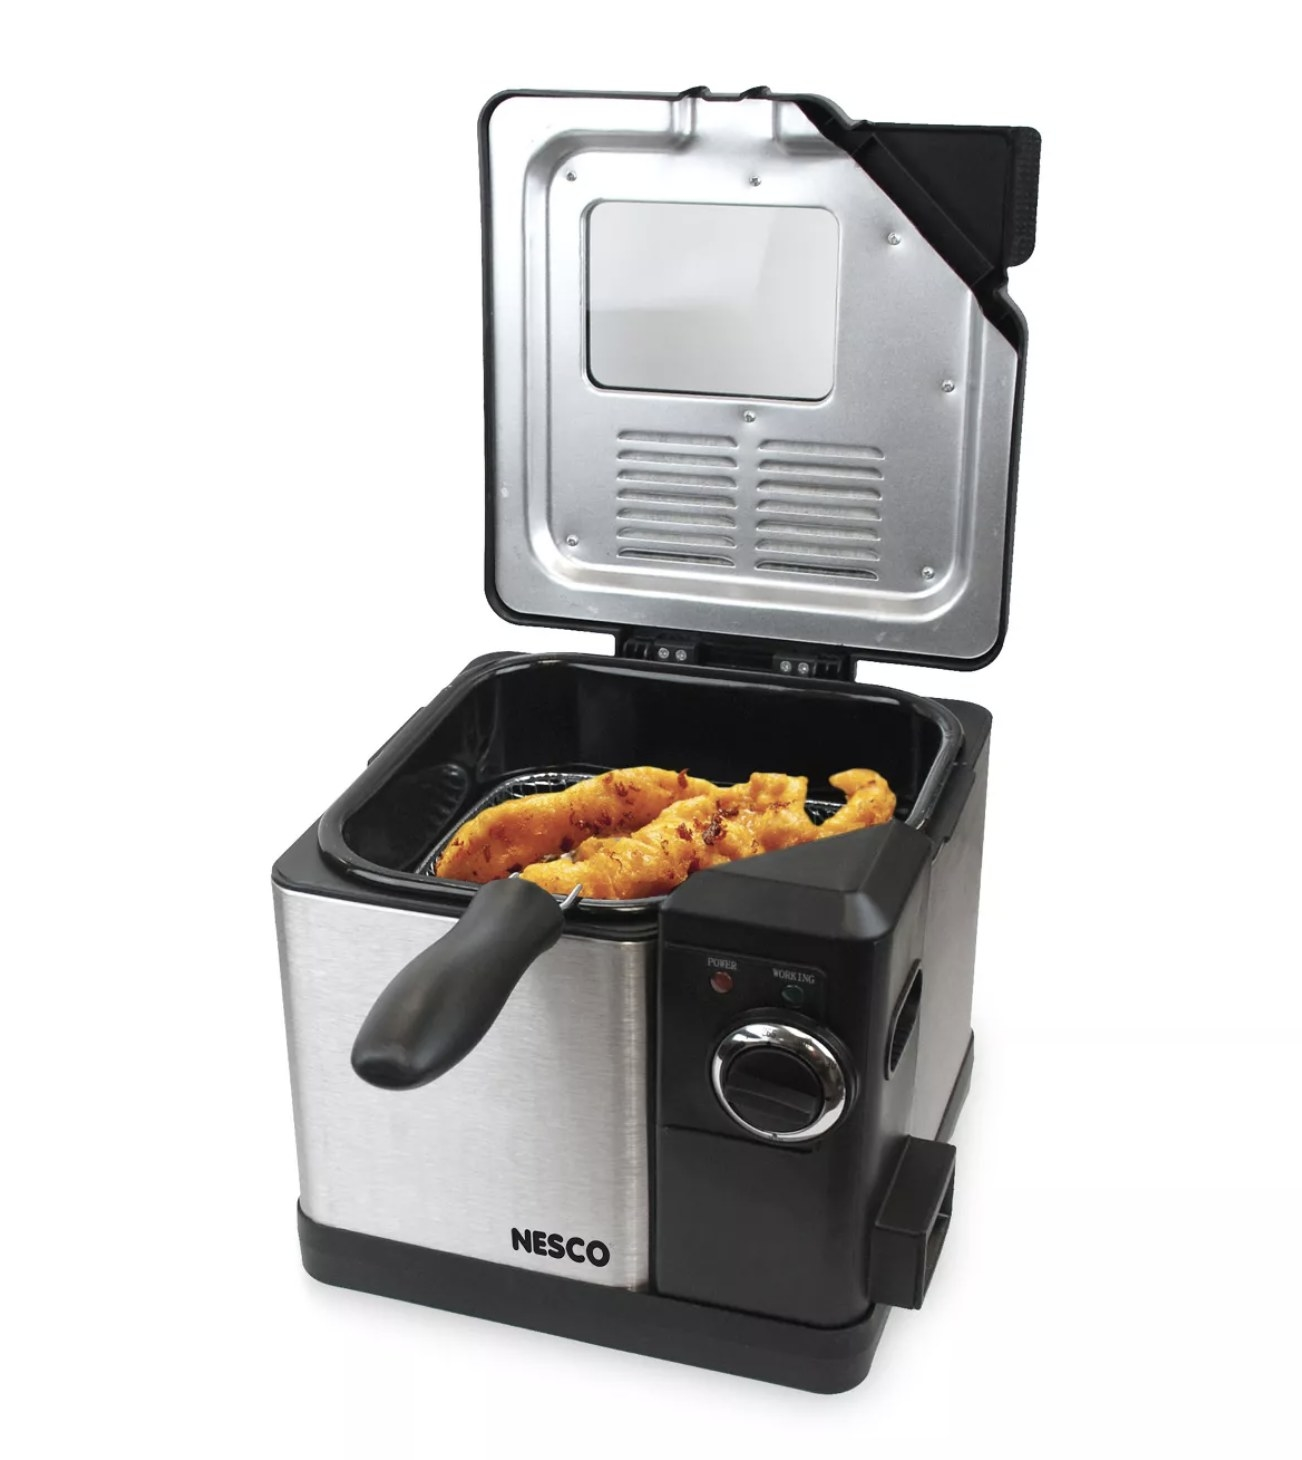 A stainless steel deep fryer open with fried fish filets inside